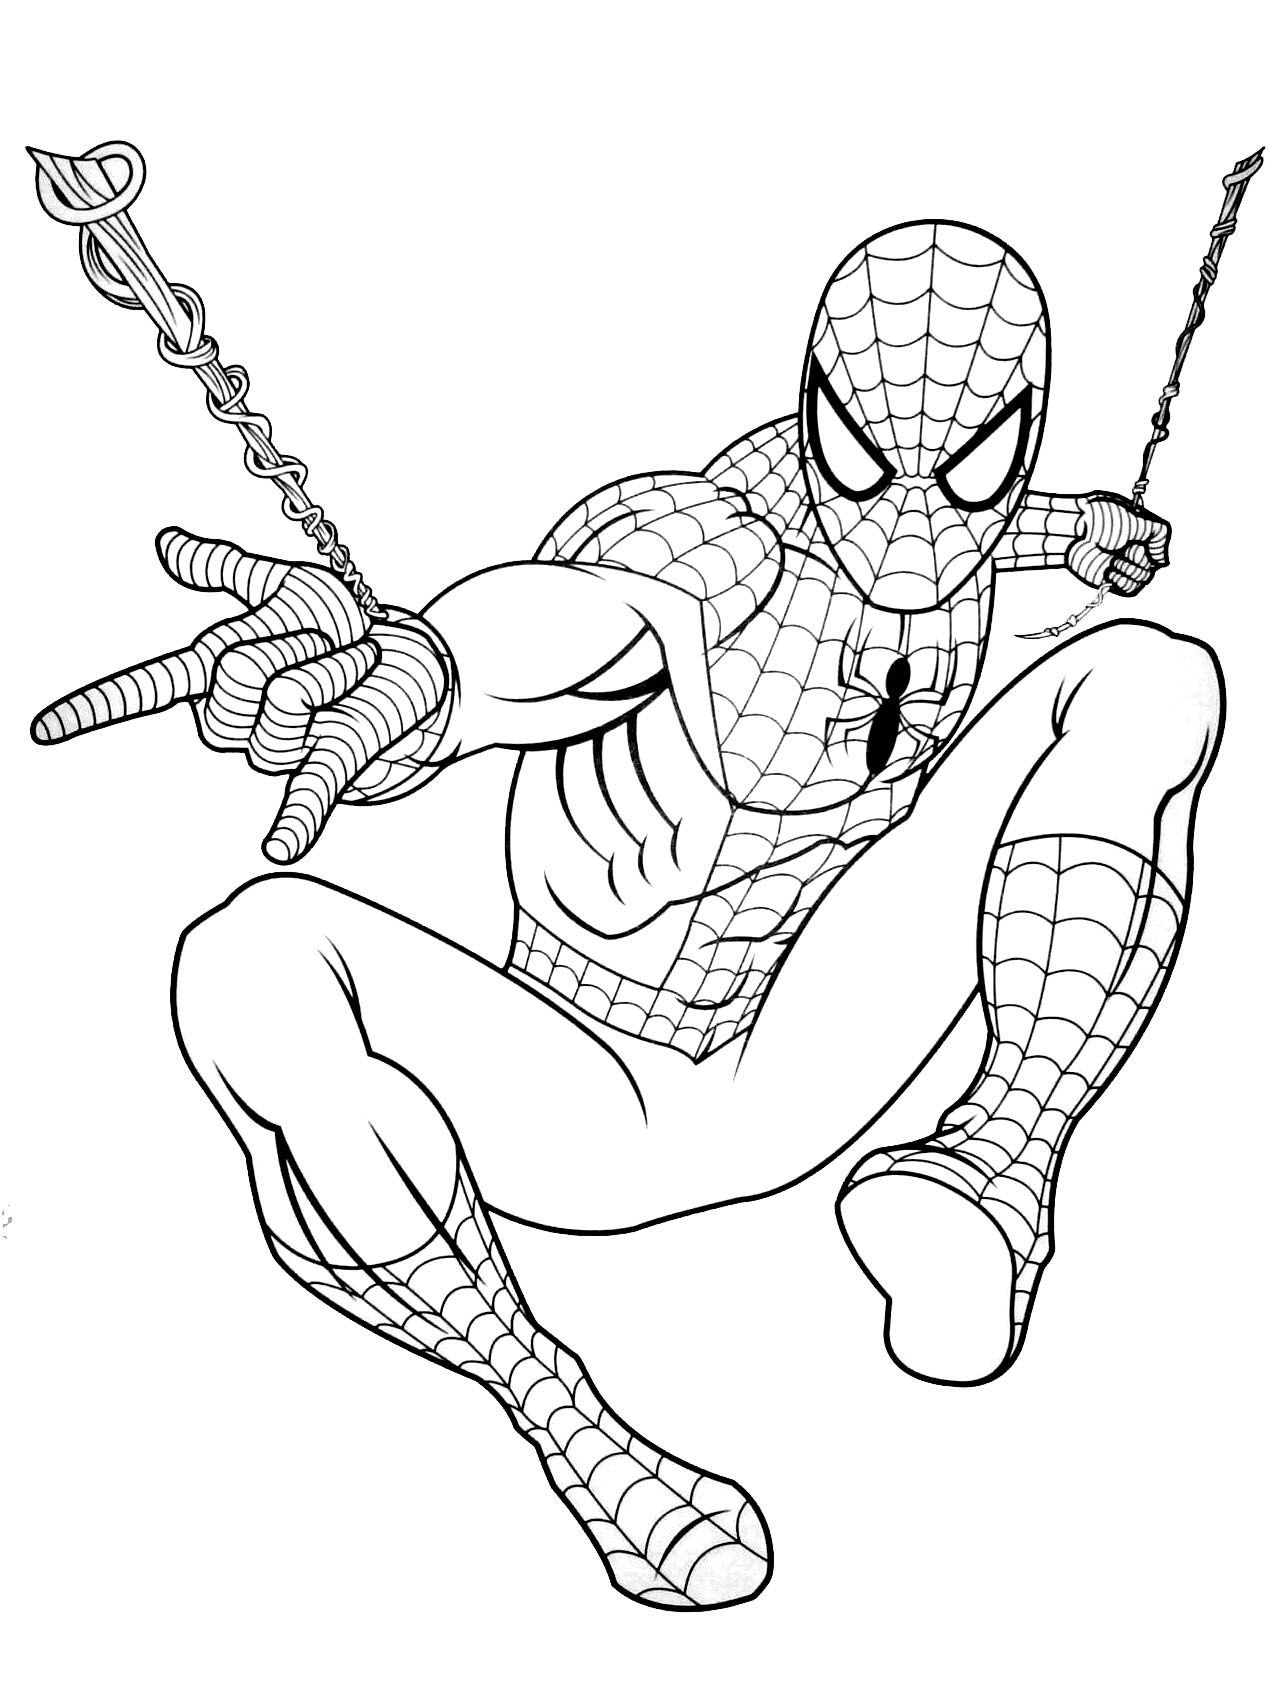 20 dessins de coloriage spiderman gratuit imprimer - Dessiner spiderman facile ...